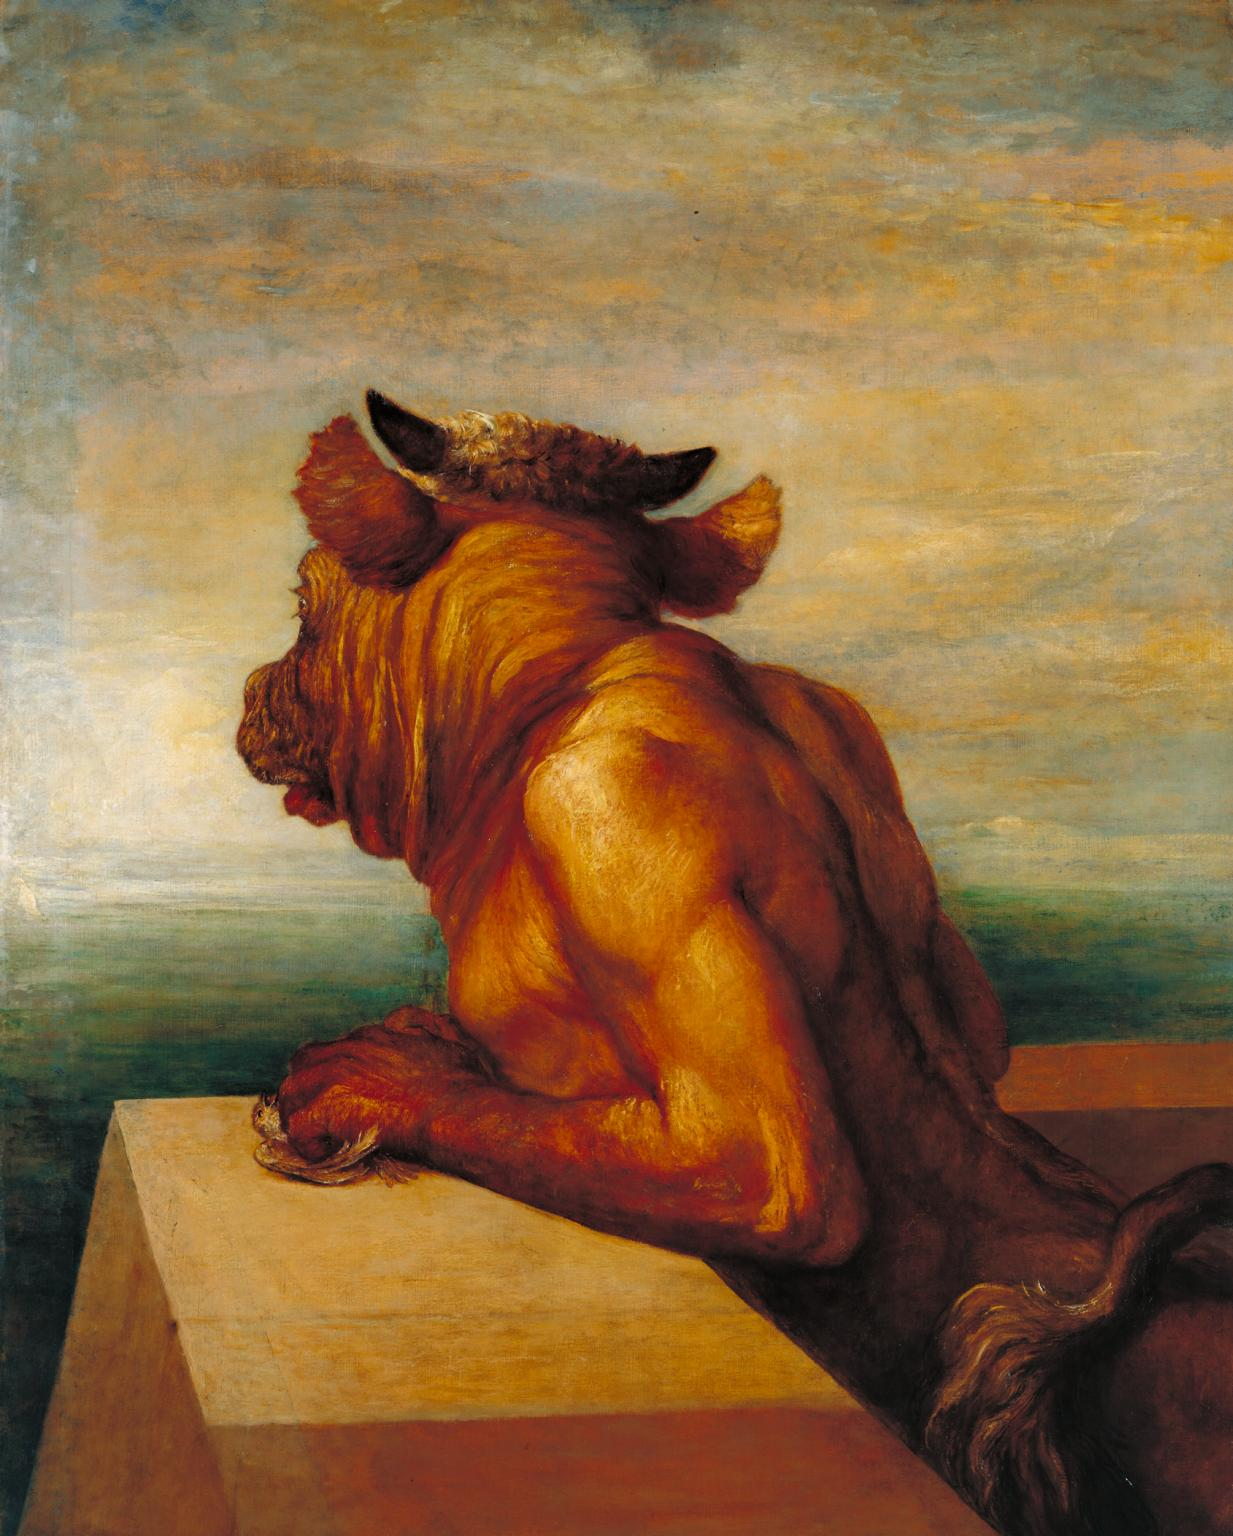 George Frederic Watts,  The Minotaur,  1885,  Photo © Tate Museum  CC-BY-NC-ND 3.0 (Unported)